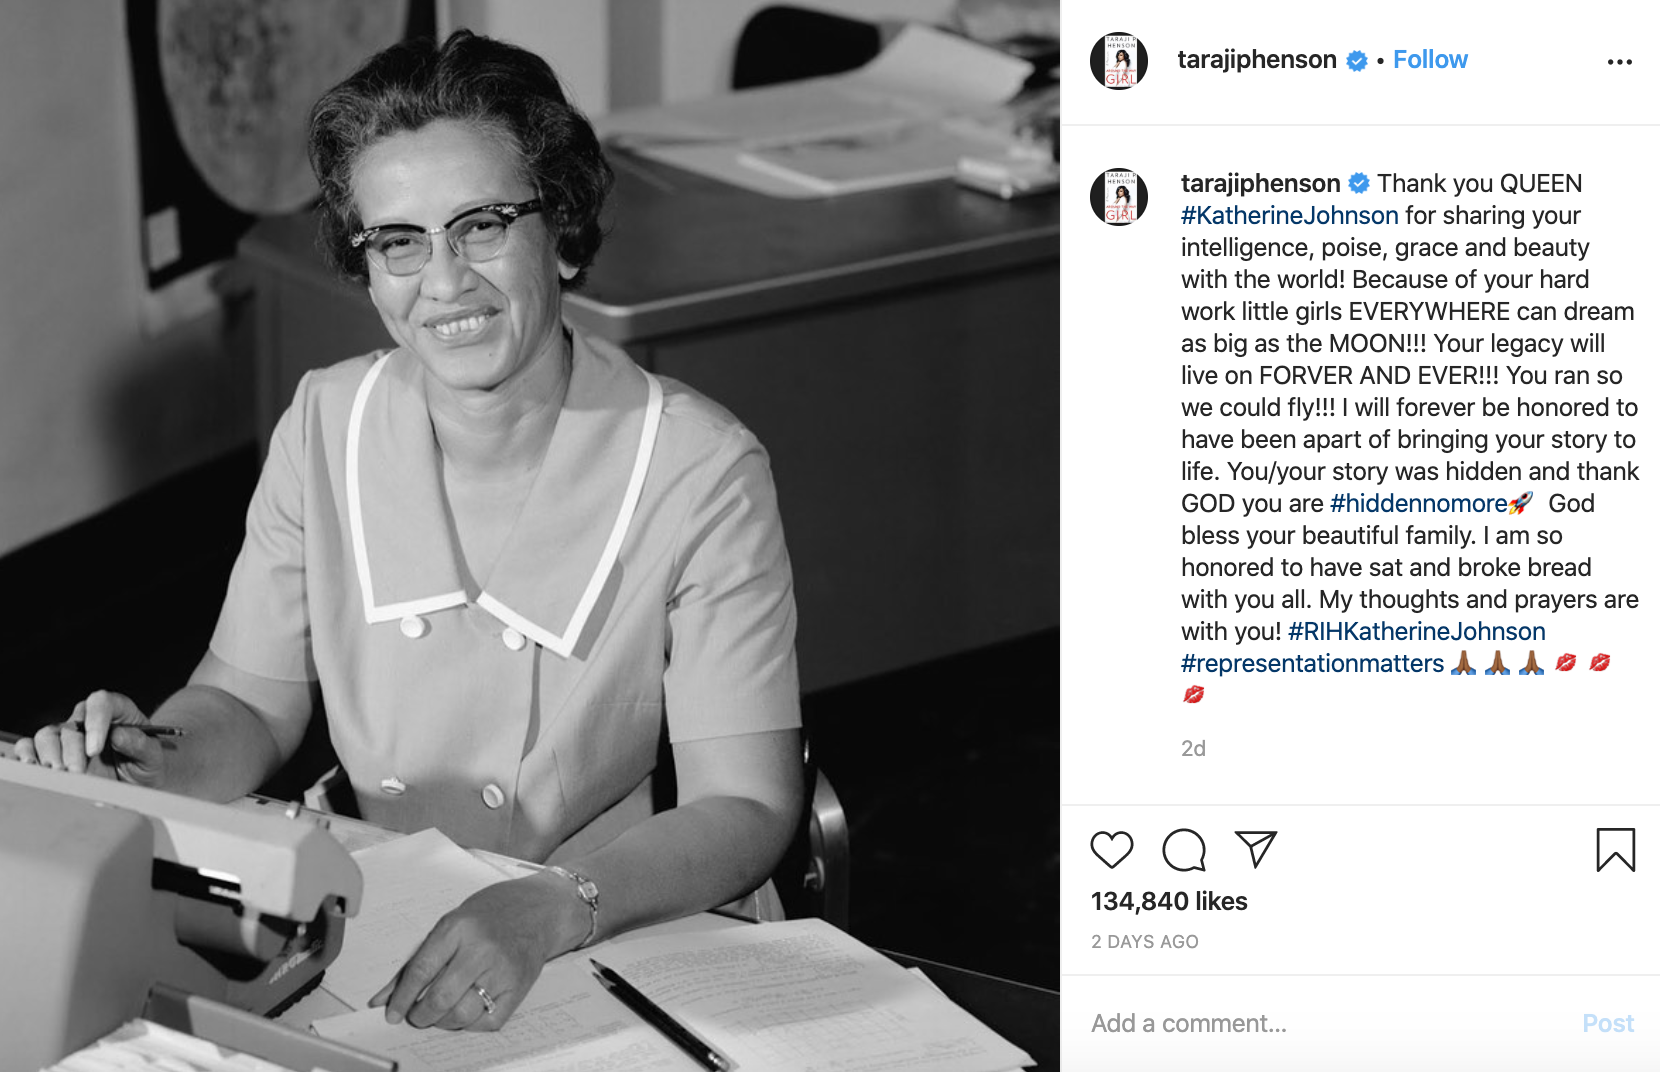 Screenshot of Taraji Henson's Instagram post about Katherine Johnson's death. Includes black and white photo of smiling Katherine Johnson at a desk with lots of papers.  Taraji's caption: Thank you QUEEN #KatherineJohnson for sharing your intelligence, poise, grace and beauty with the world! Because of your hard work little girls EVERYWHERE can dream as big as the MOON!!! Your legacy will live on FORVER AND EVER!!! You ran so we could fly!!! I will forever be honored to have been apart of bringing your story to life. You/your story was hidden and thank GOD you are #hiddennomore�� God bless your beautiful family. I am so honored to have sat and broke bread with you all. My thoughts and prayers are with you! #RIHKatherineJohnson #representationmatters